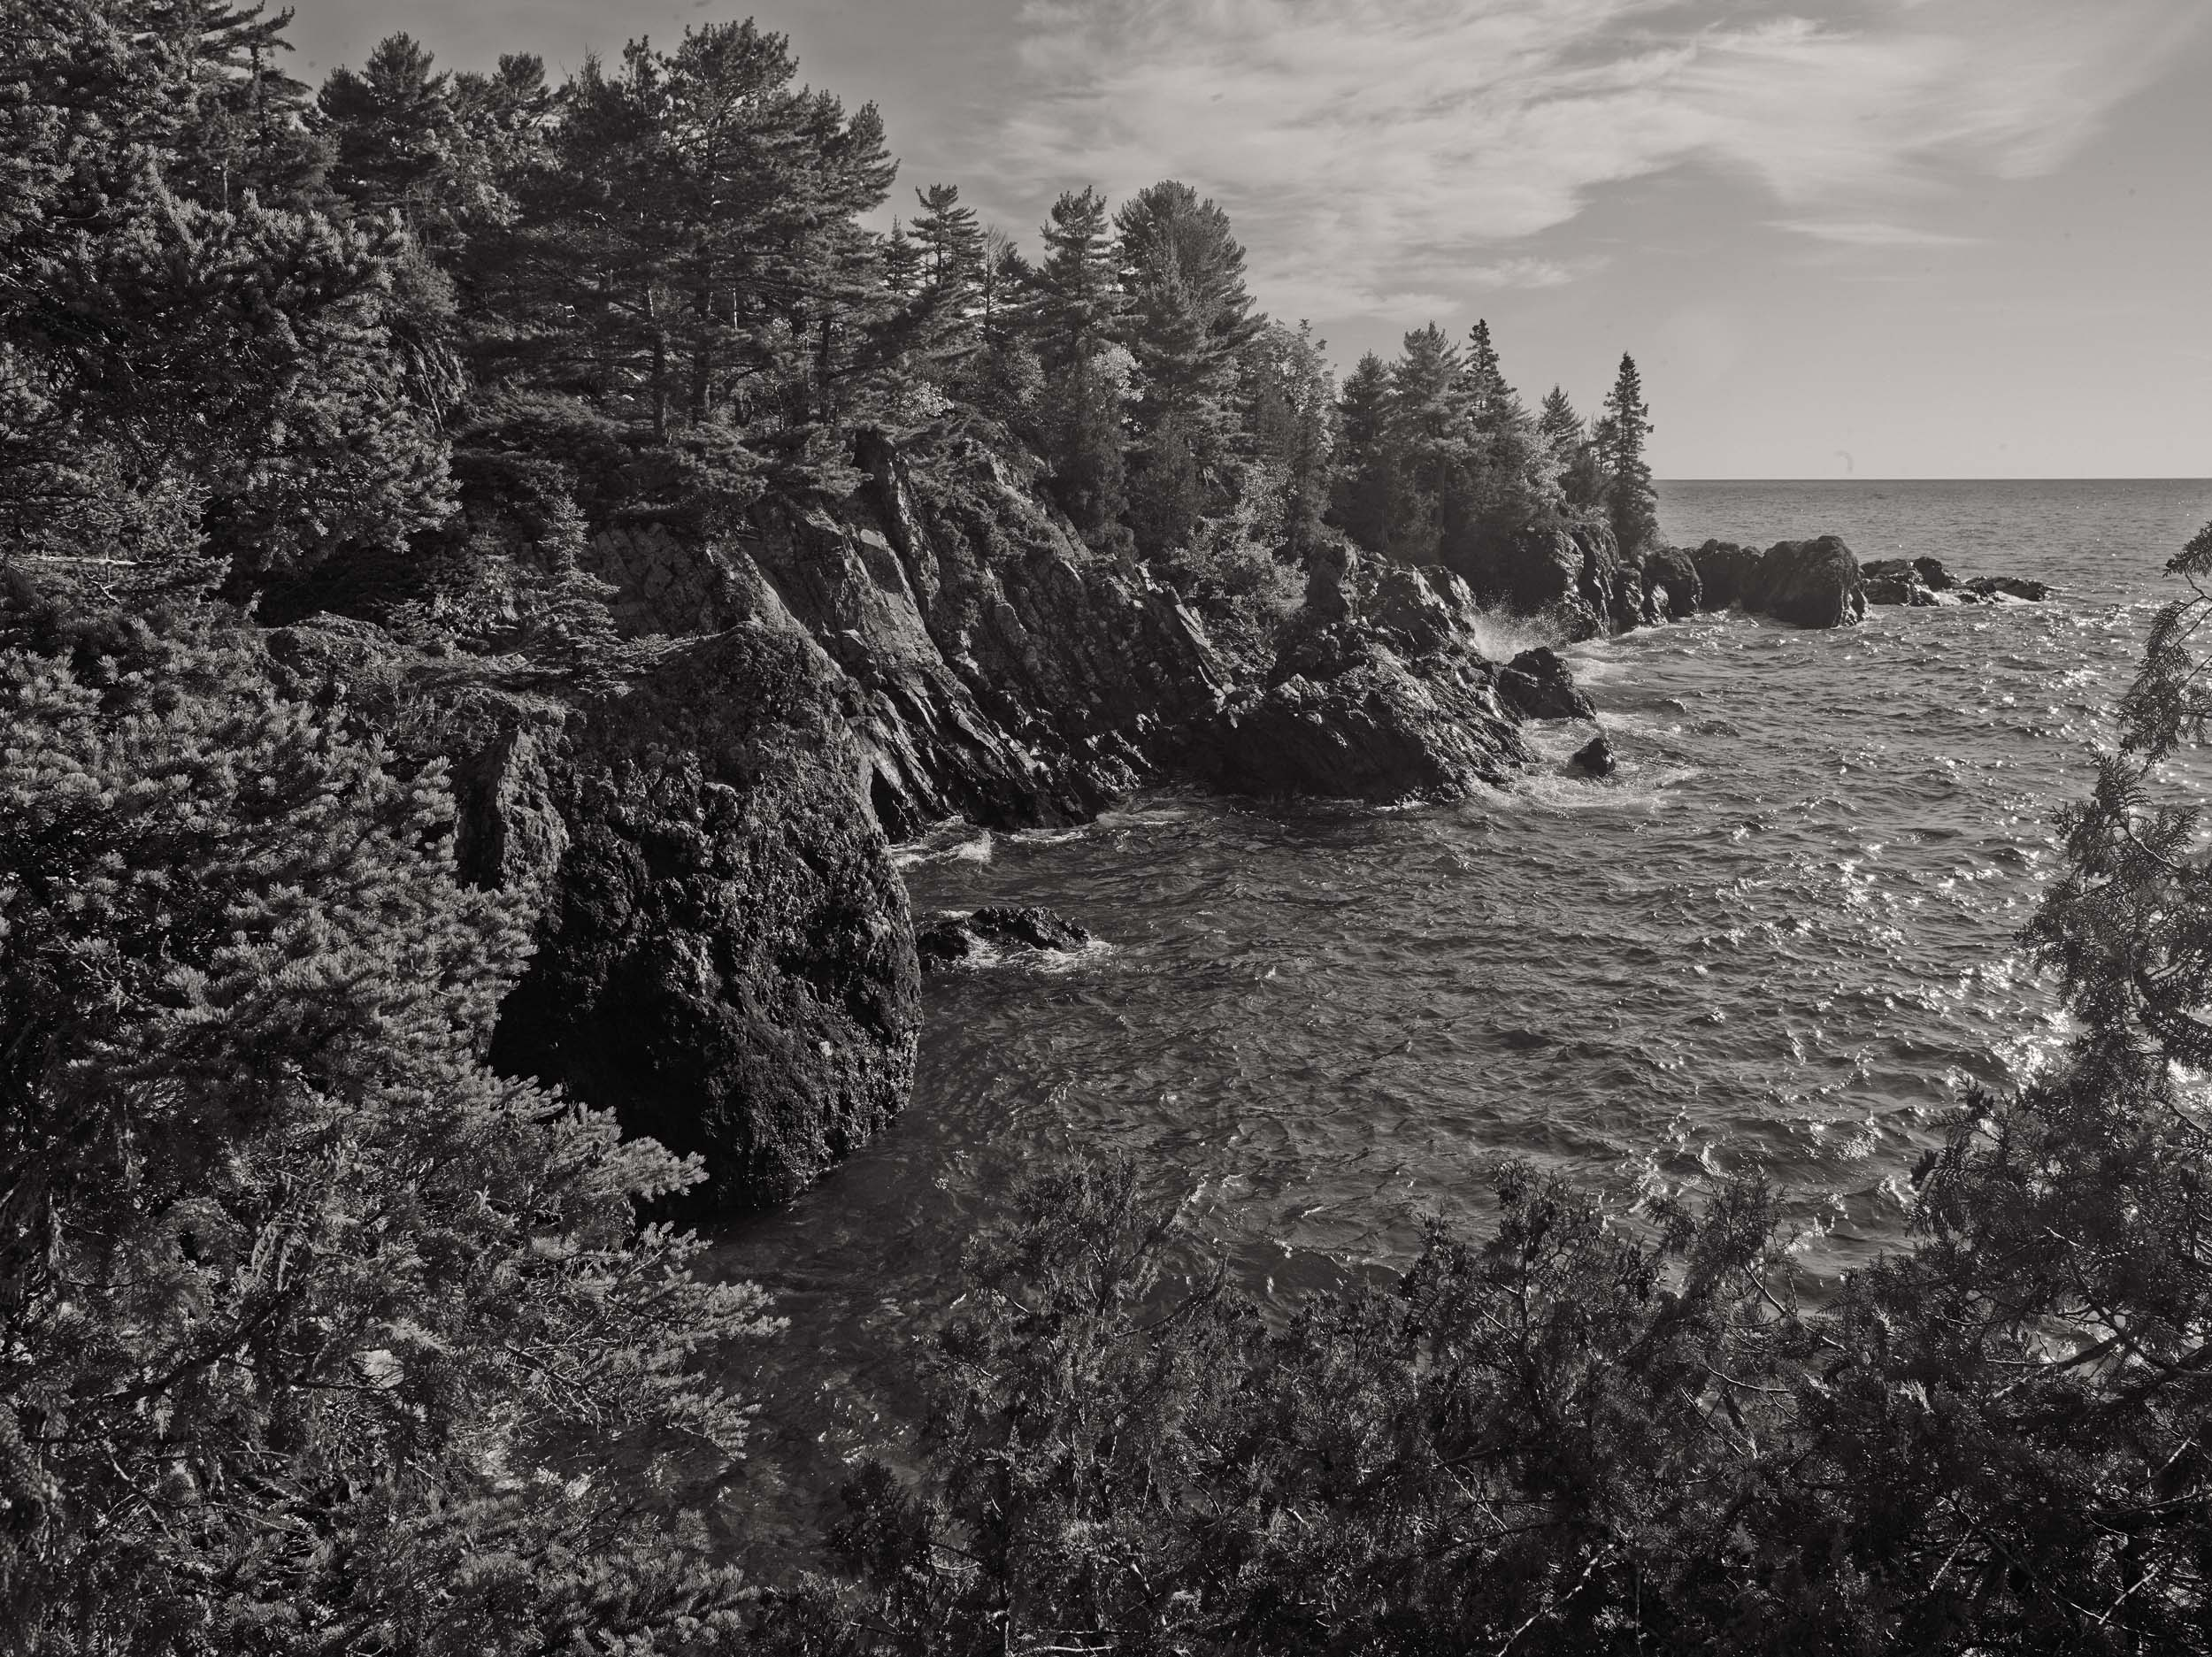 Copper Harbor. One of Michigan's most beautiful and remote spots. Fish Cove is at the tip of the Keweenaw Penninsula 15 miles down a jeep trail. It's secluded, rugged. Michigan Landscape Photography.